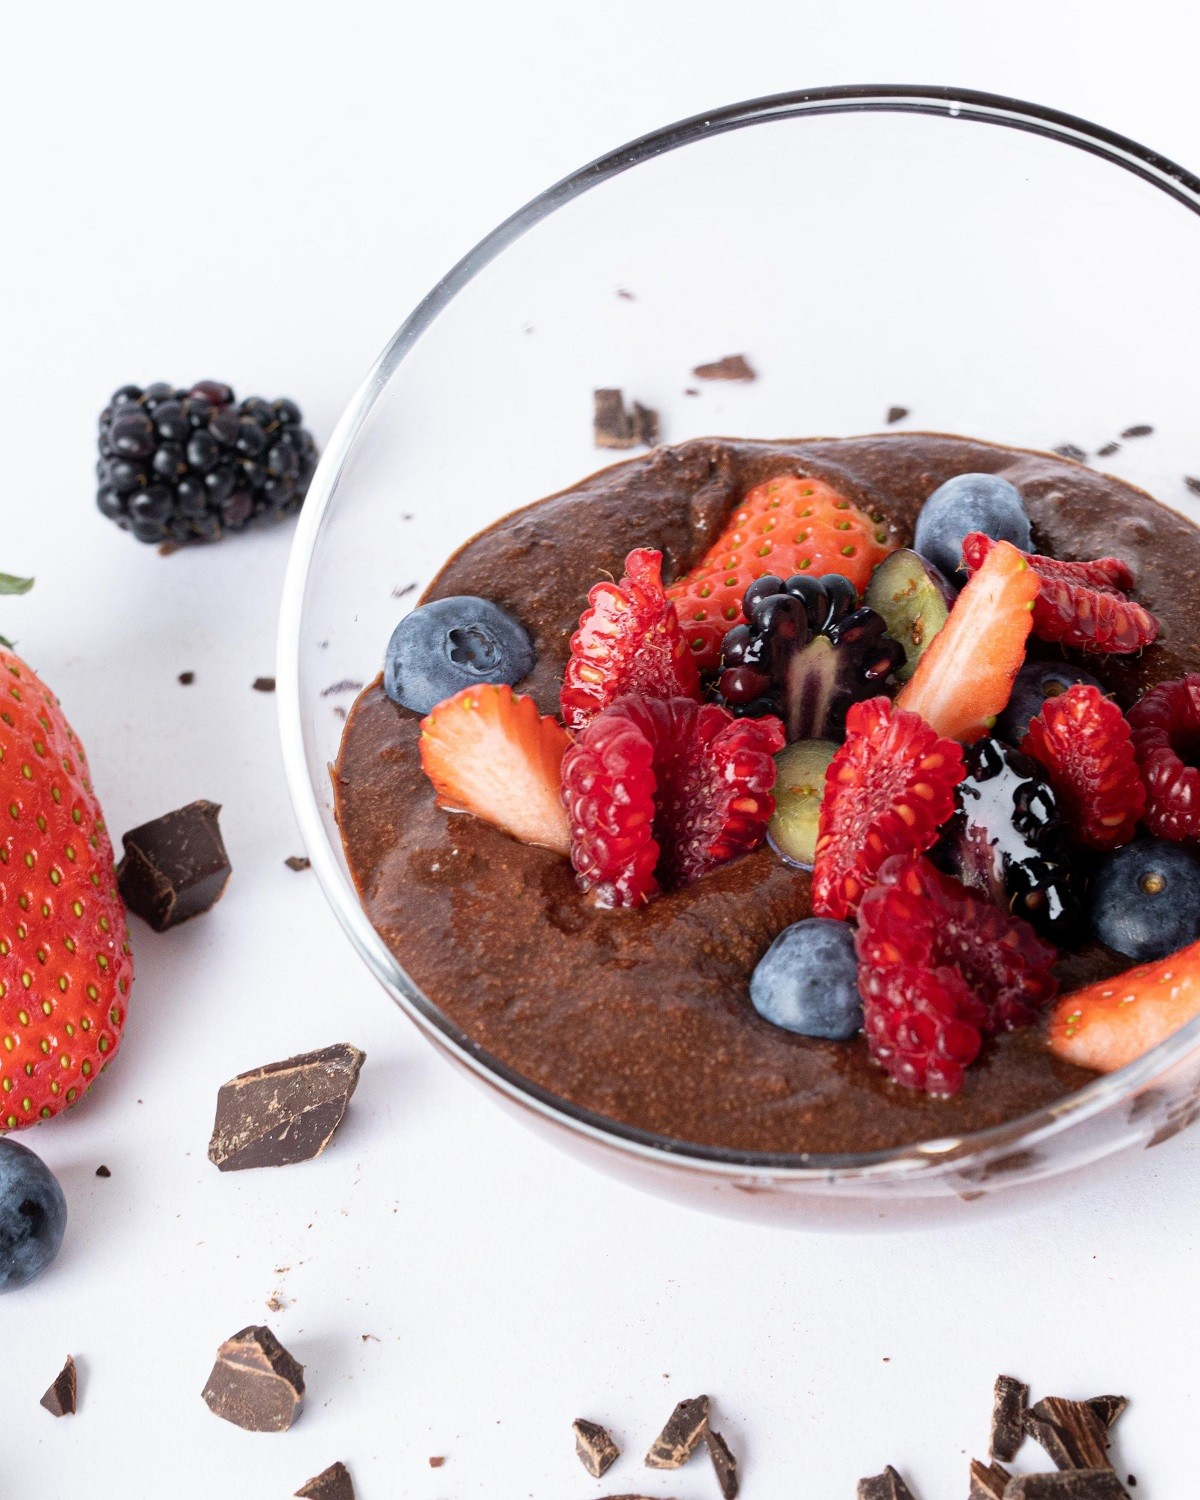 mousse de chocolate con frutos rojos